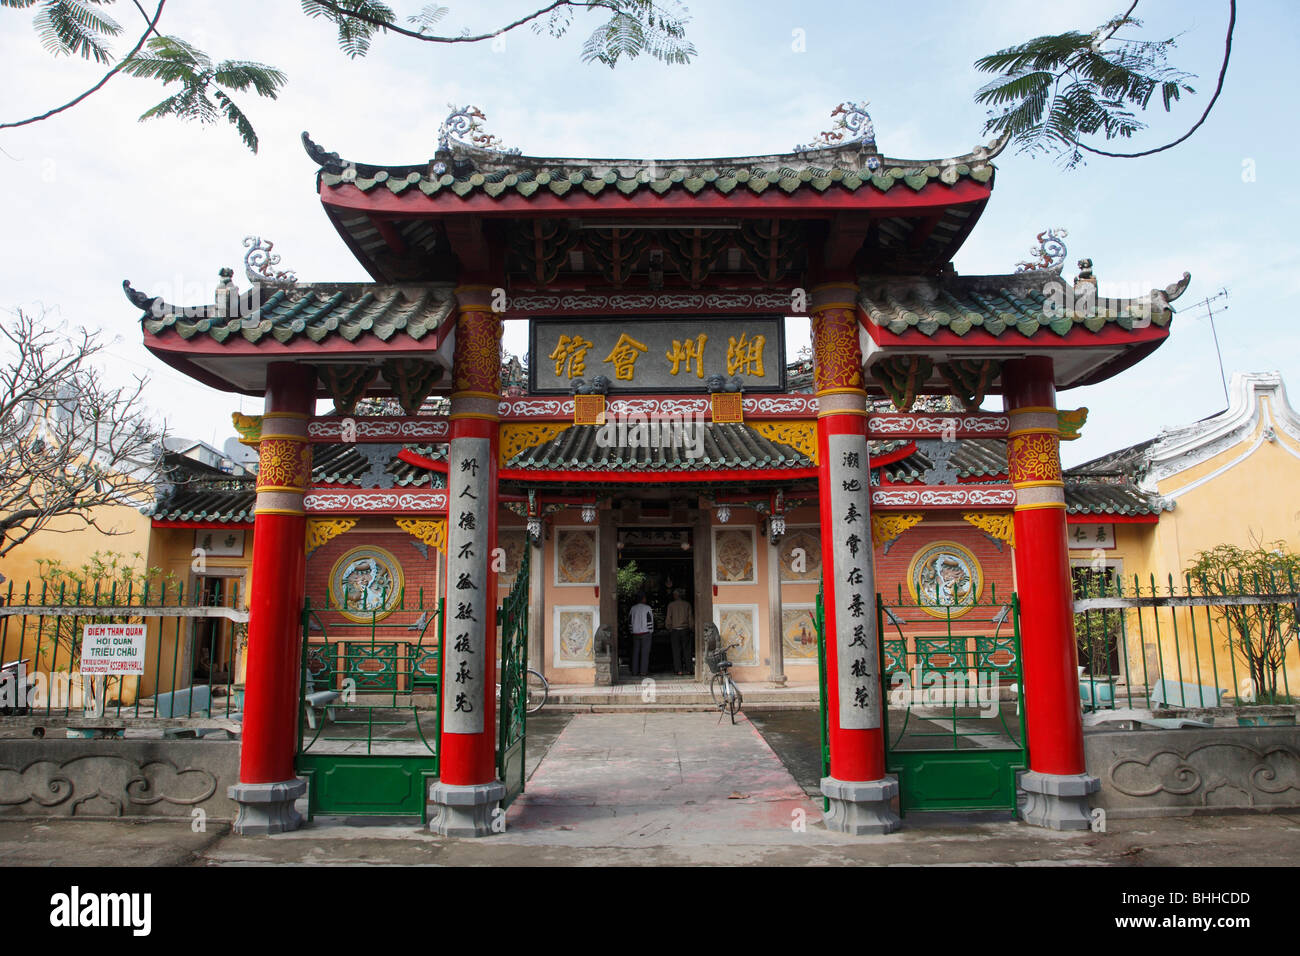 Vietnam, Hoi An, Chaozhou Assembly Hall, - Stock Image